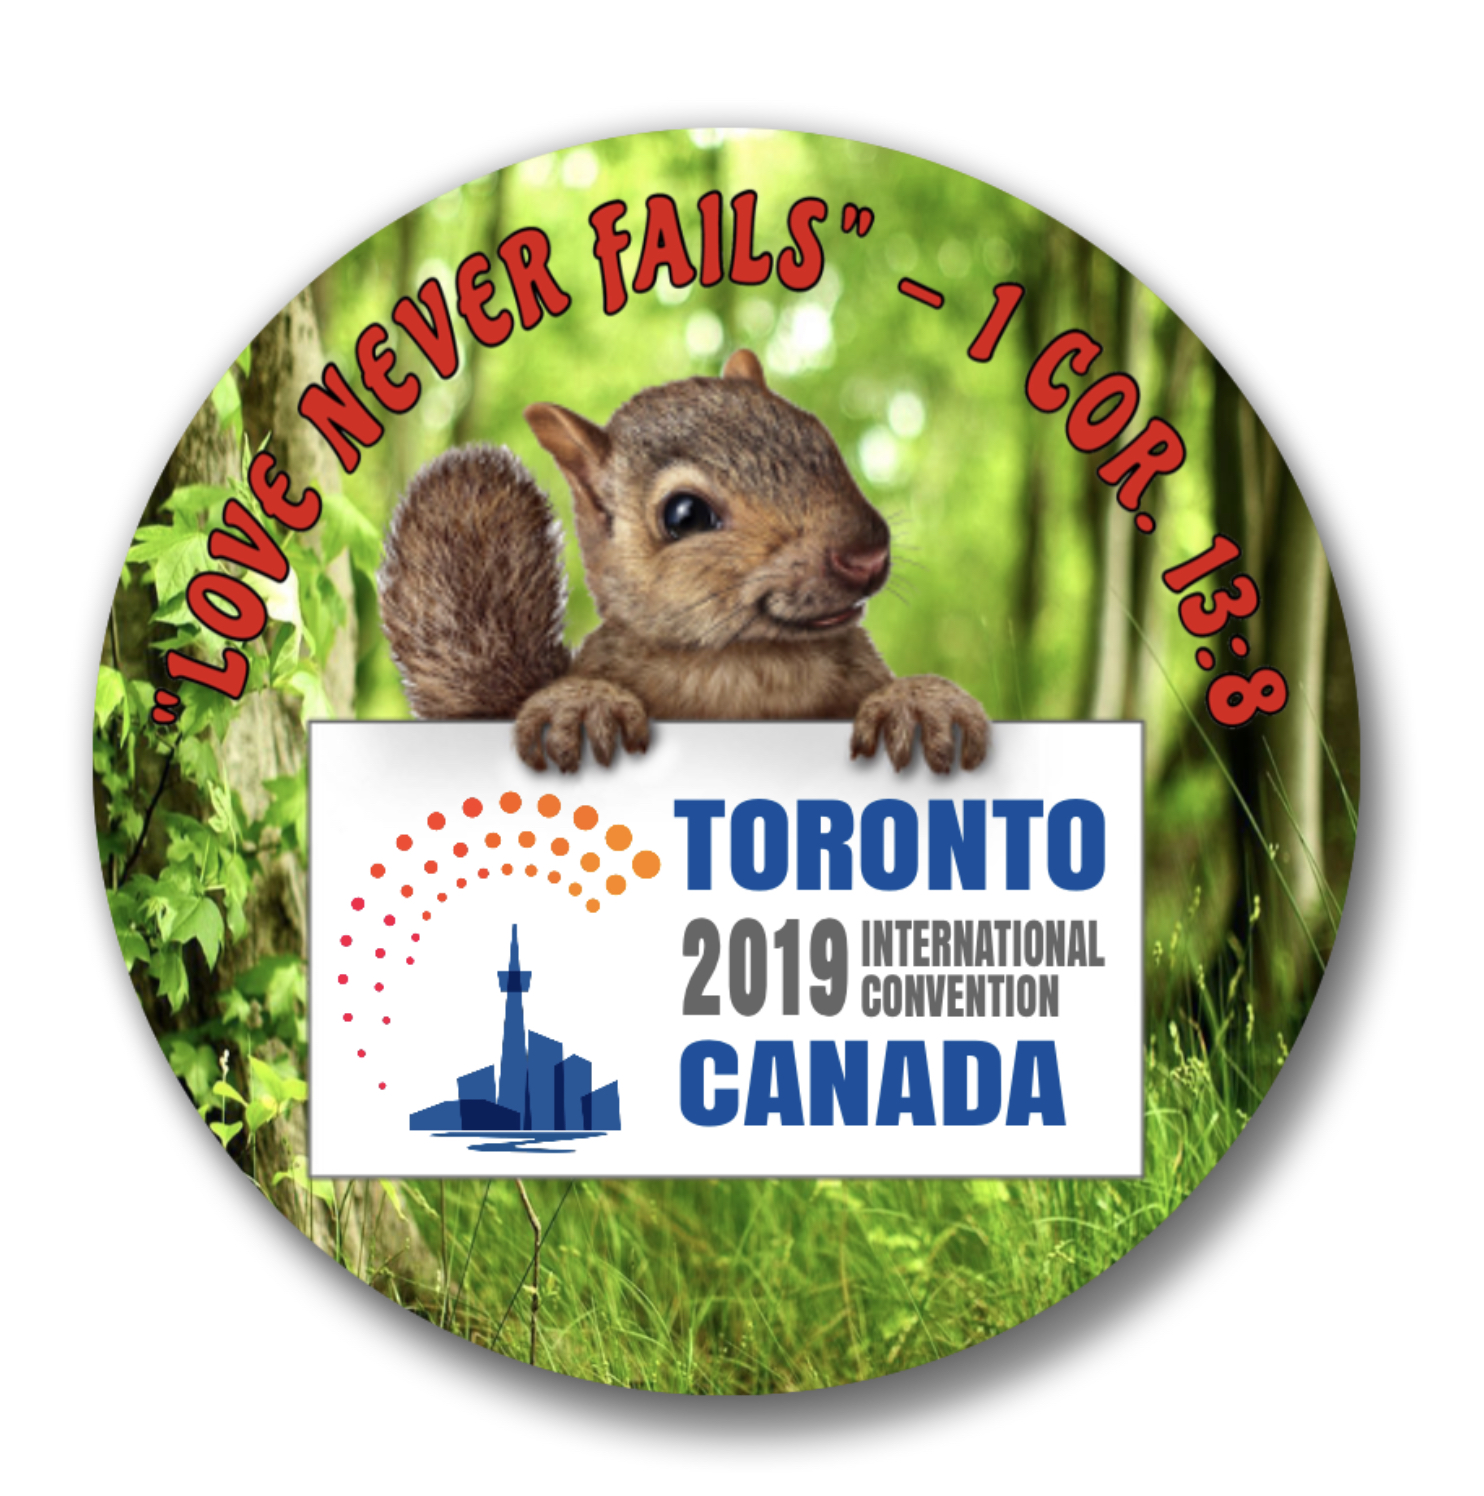 150 Toronto Canada Squirrel JW International Convention Love Never Fails  Buttons - 1 25""